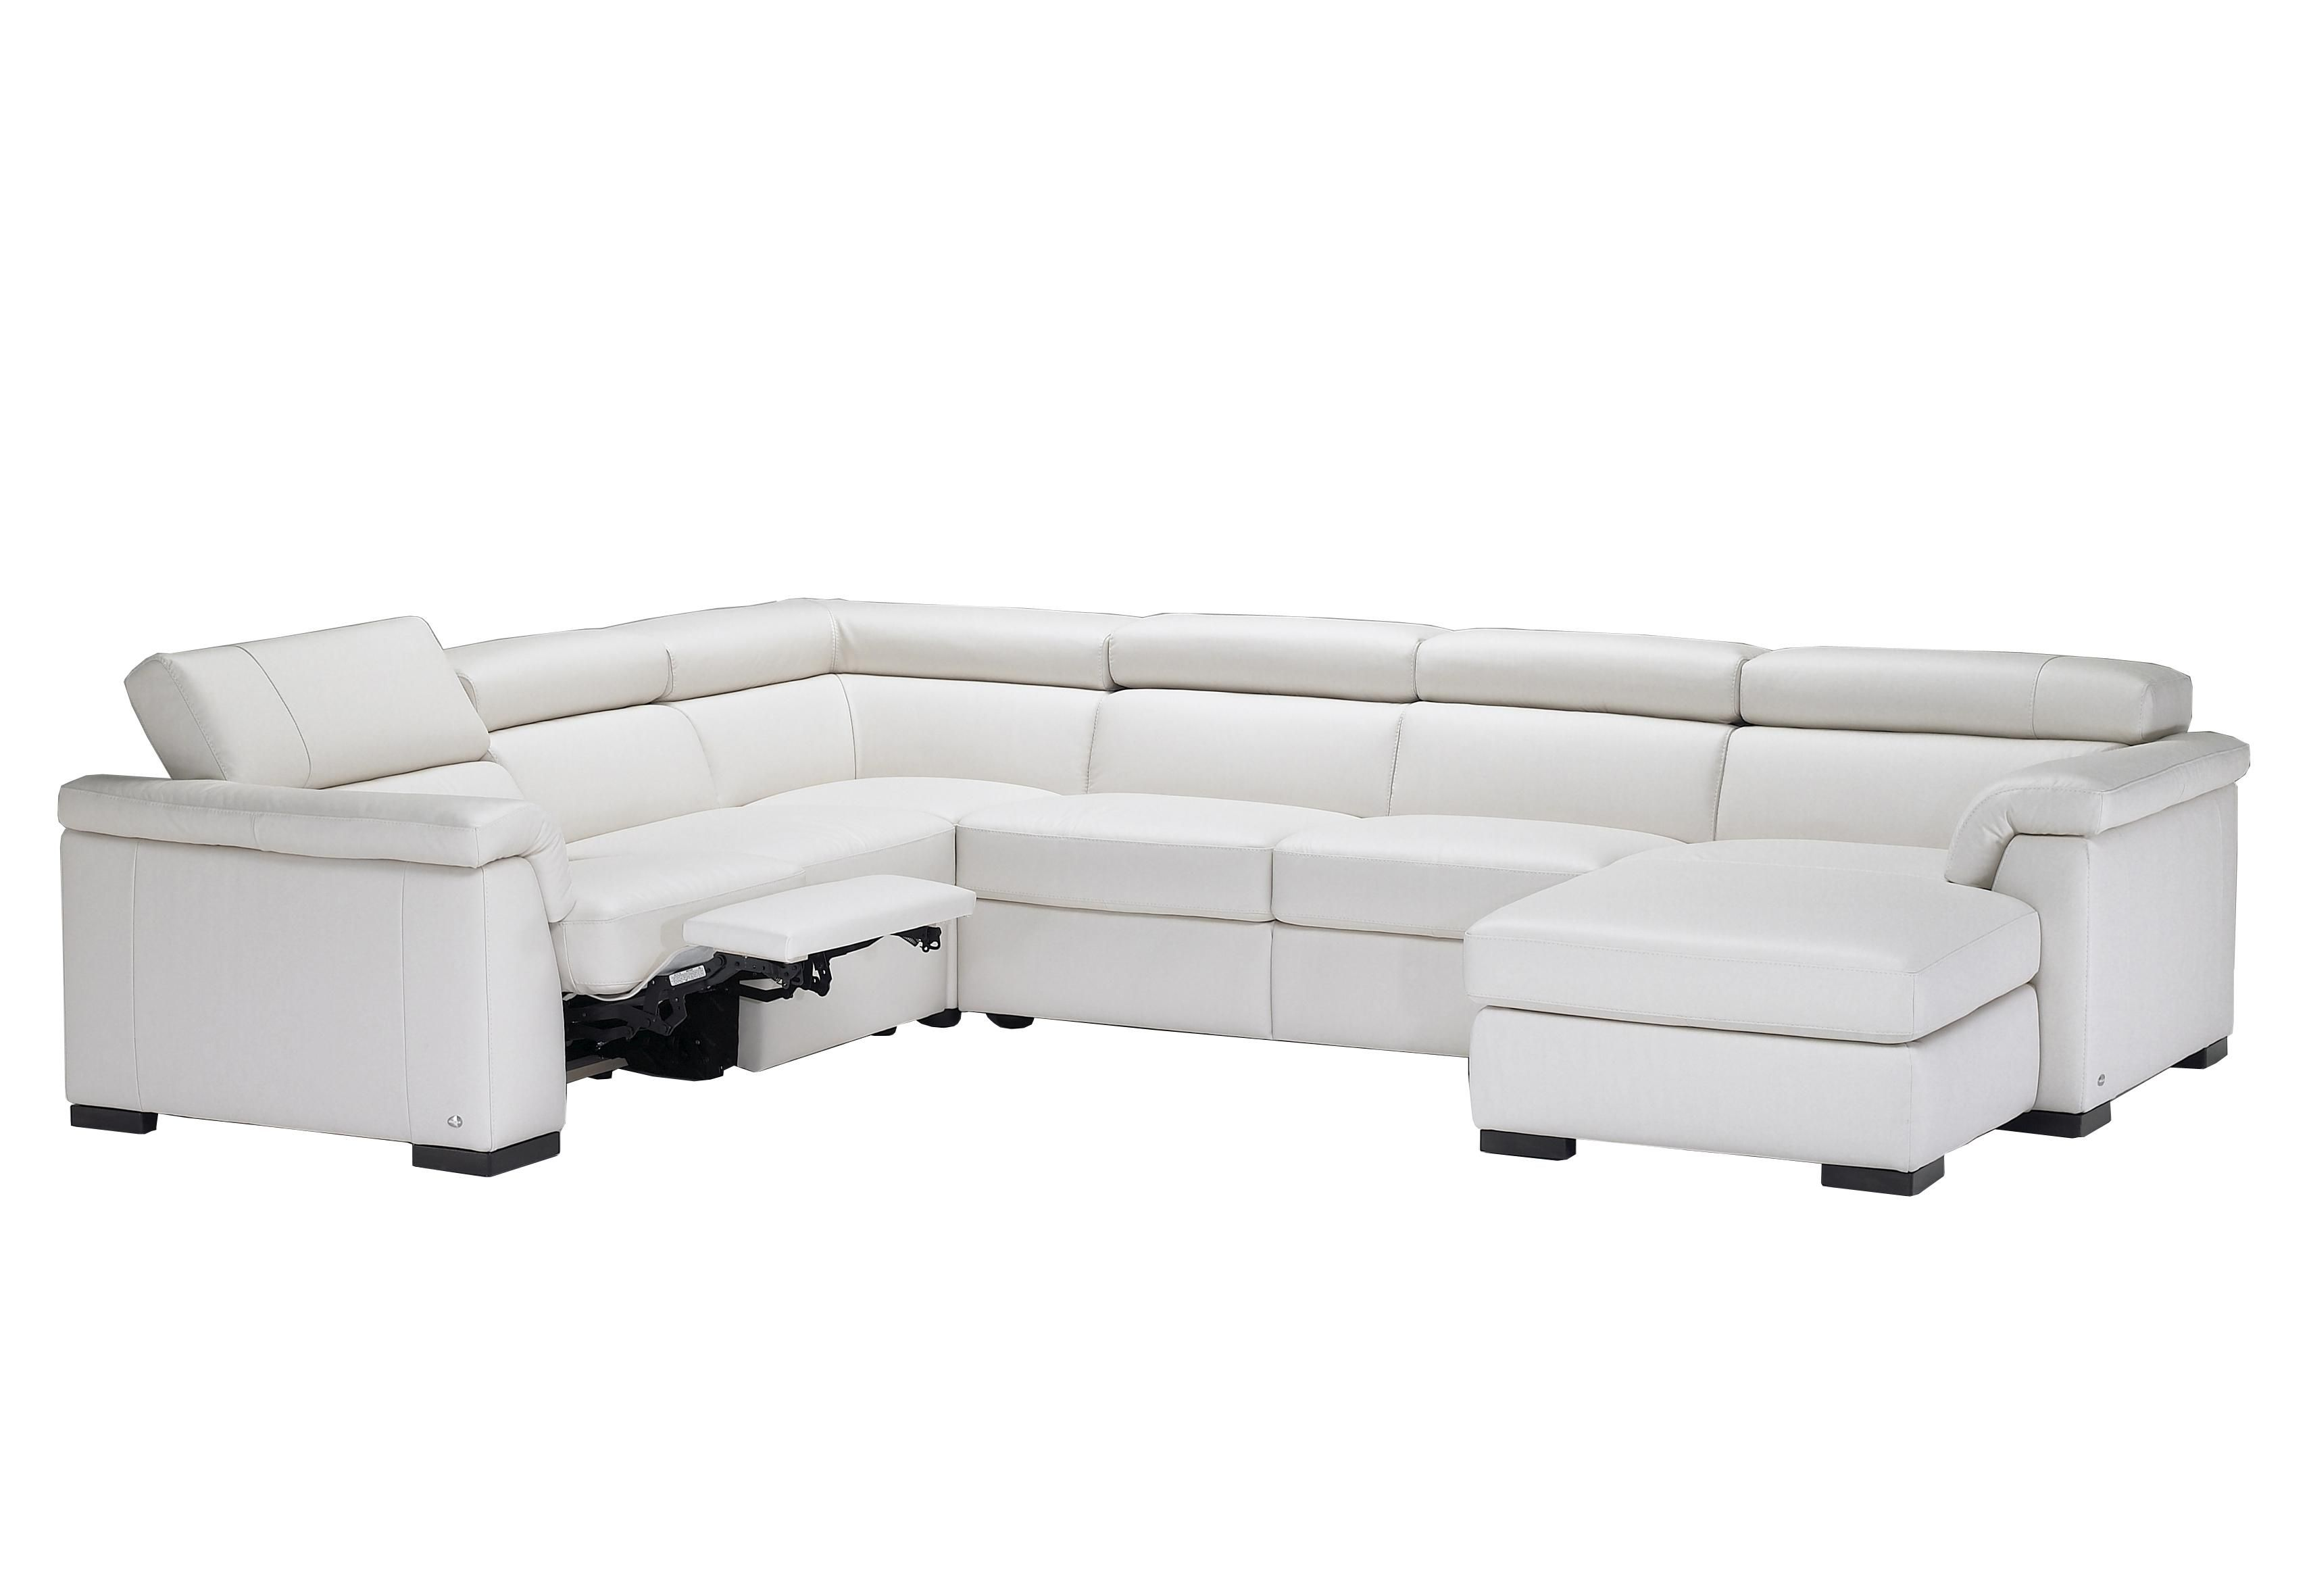 Natuzzi Editions B634 Contemporary Leather Sectional Sofa with RAF